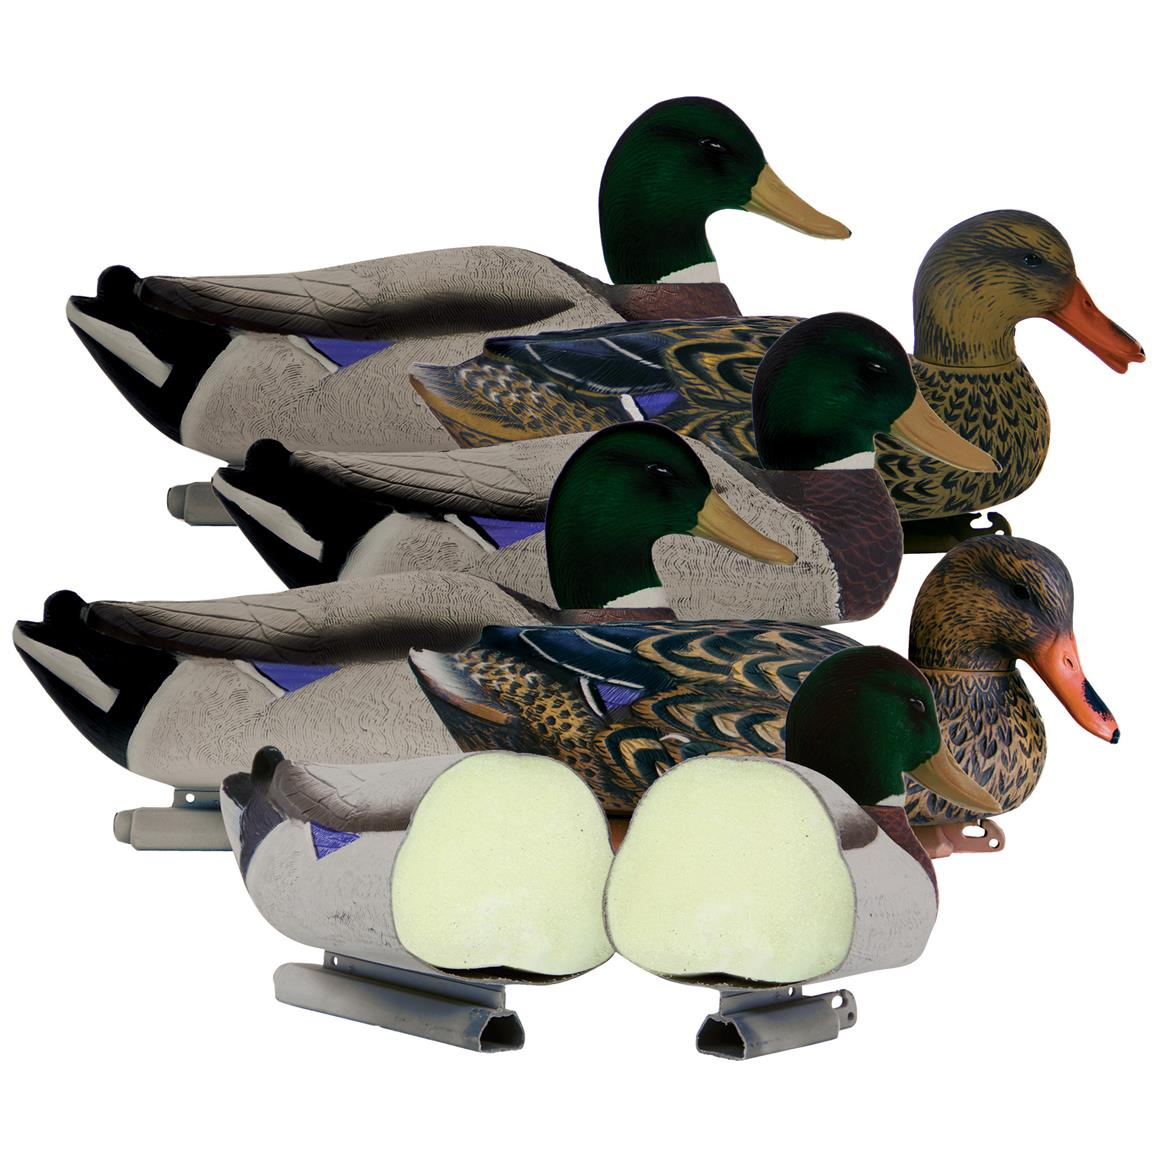 6-Pk. of Higdon® Foam-filled Magnum Mallard Decoys with Flocked Heads